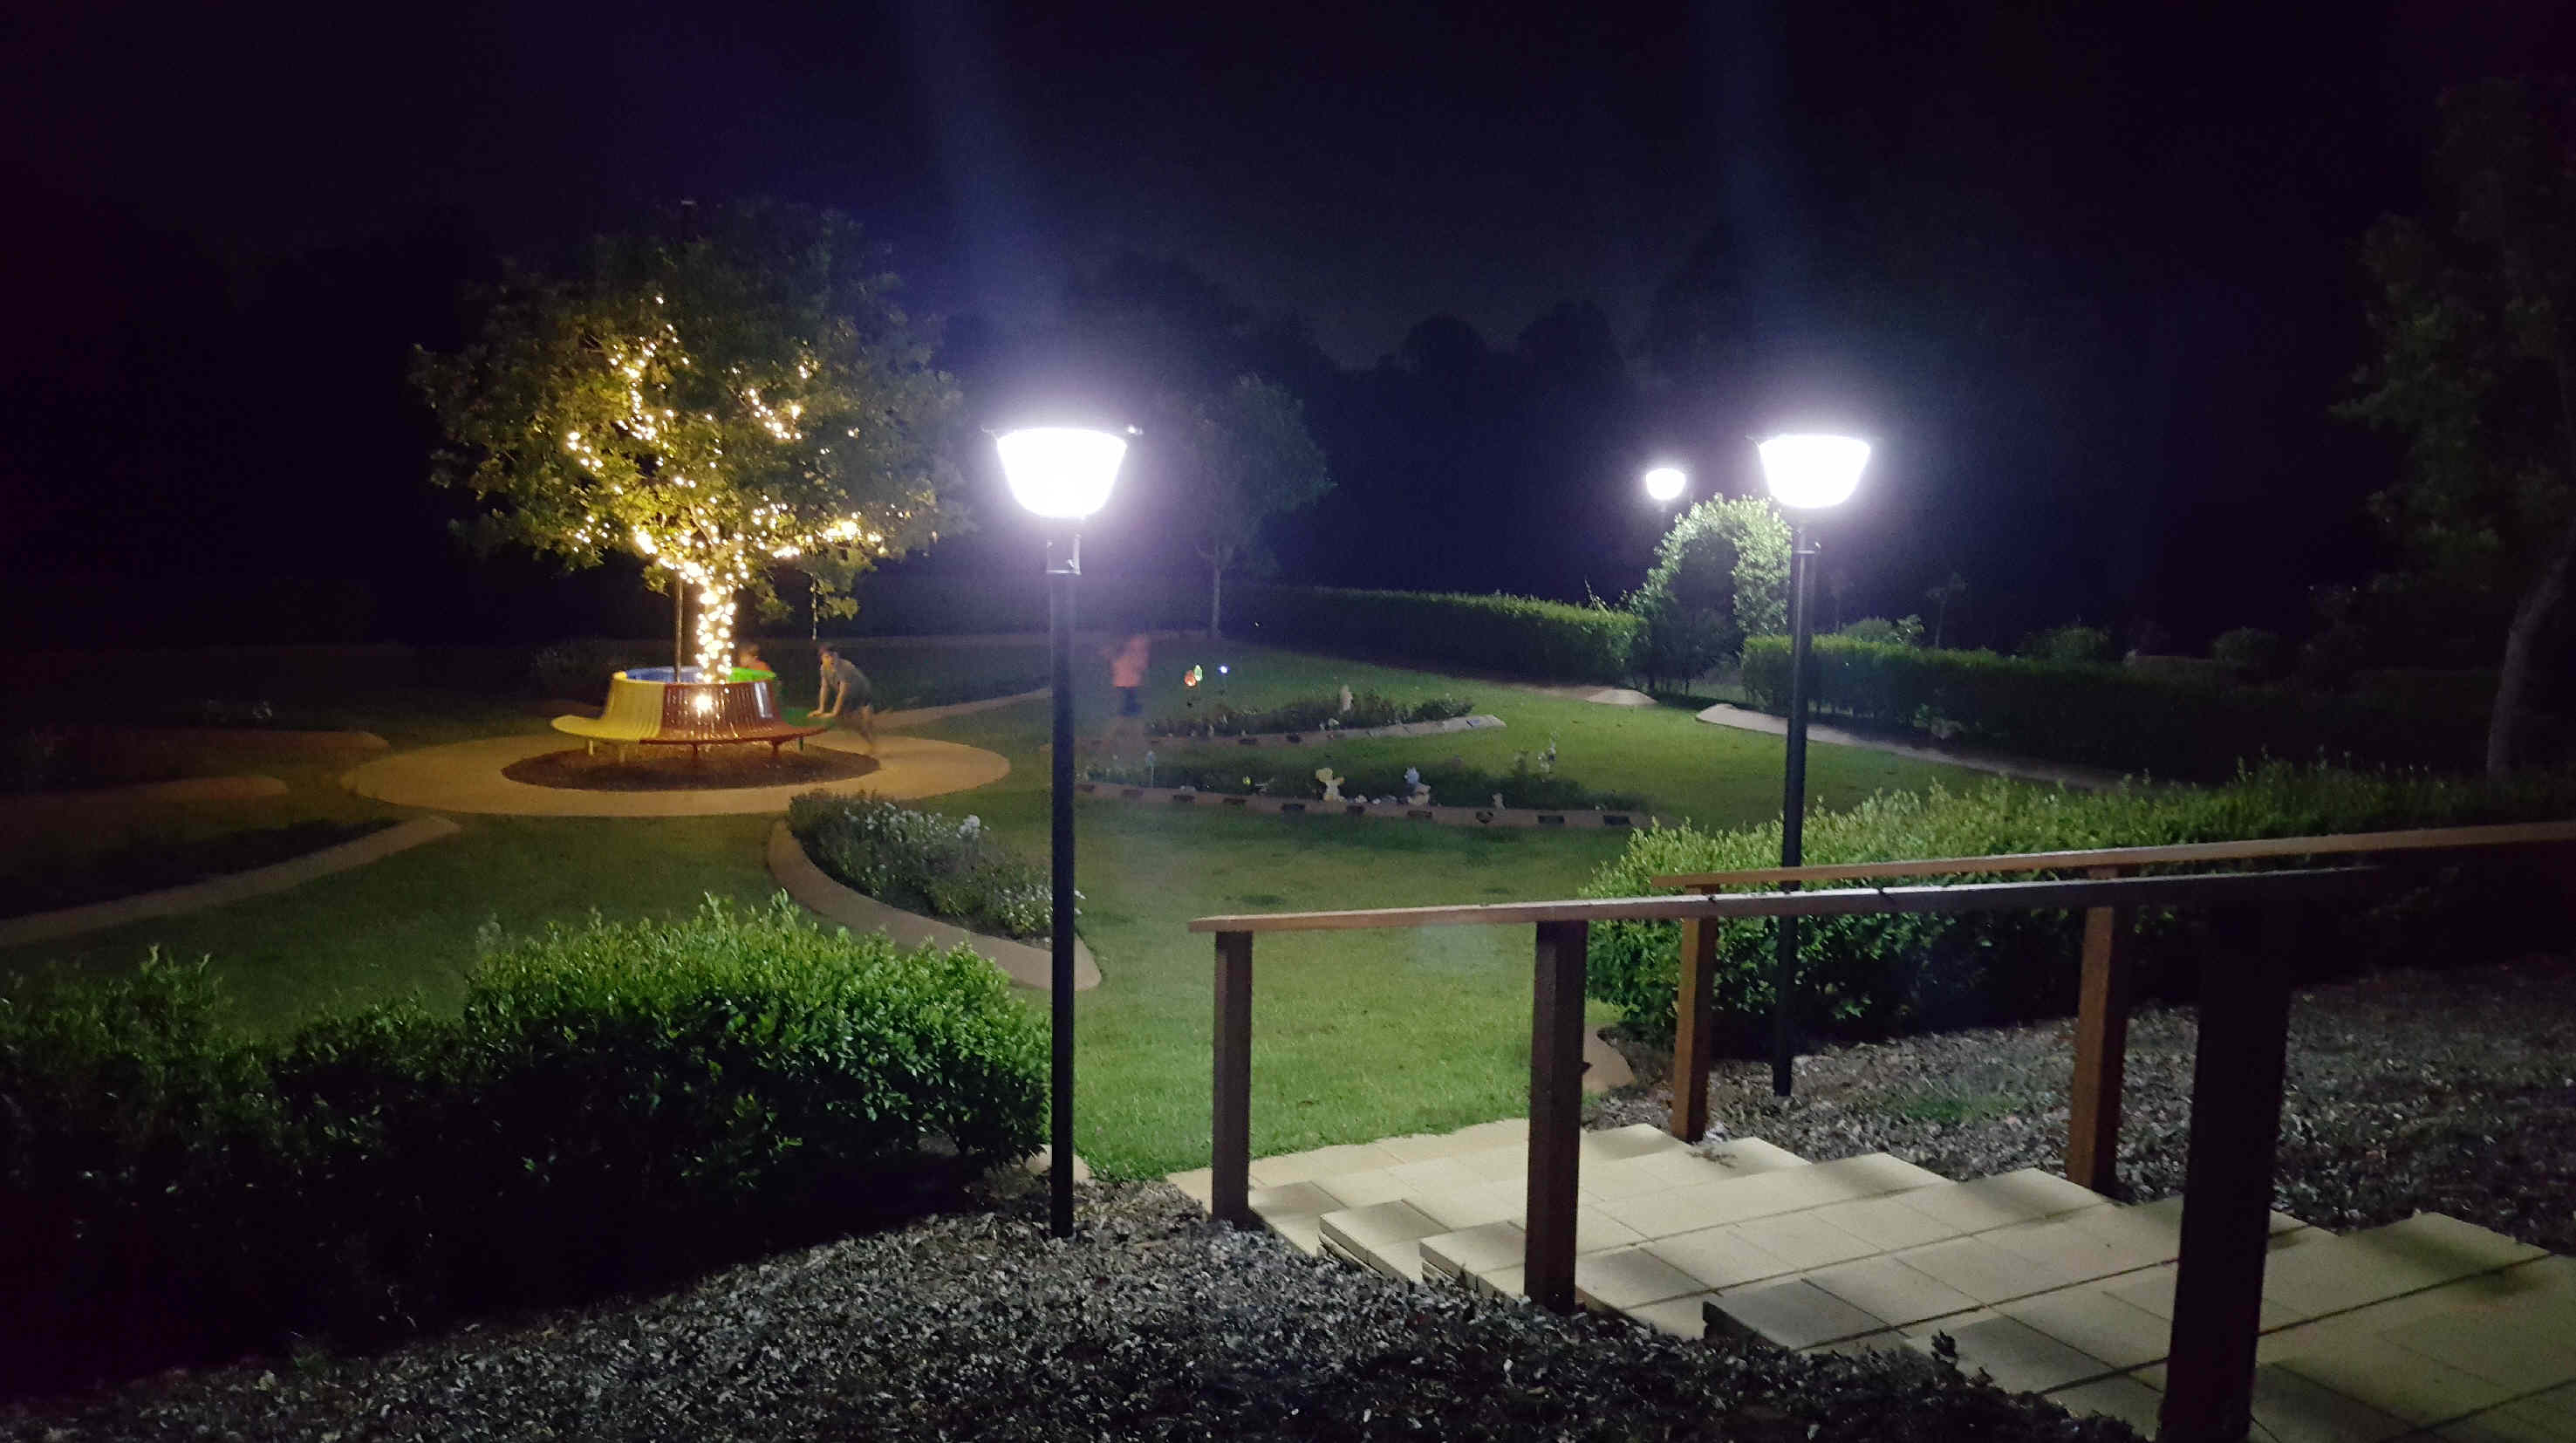 button to view our range of high quality solar powered post lights. BlackFrog Solar lights and outdoor garden lighting